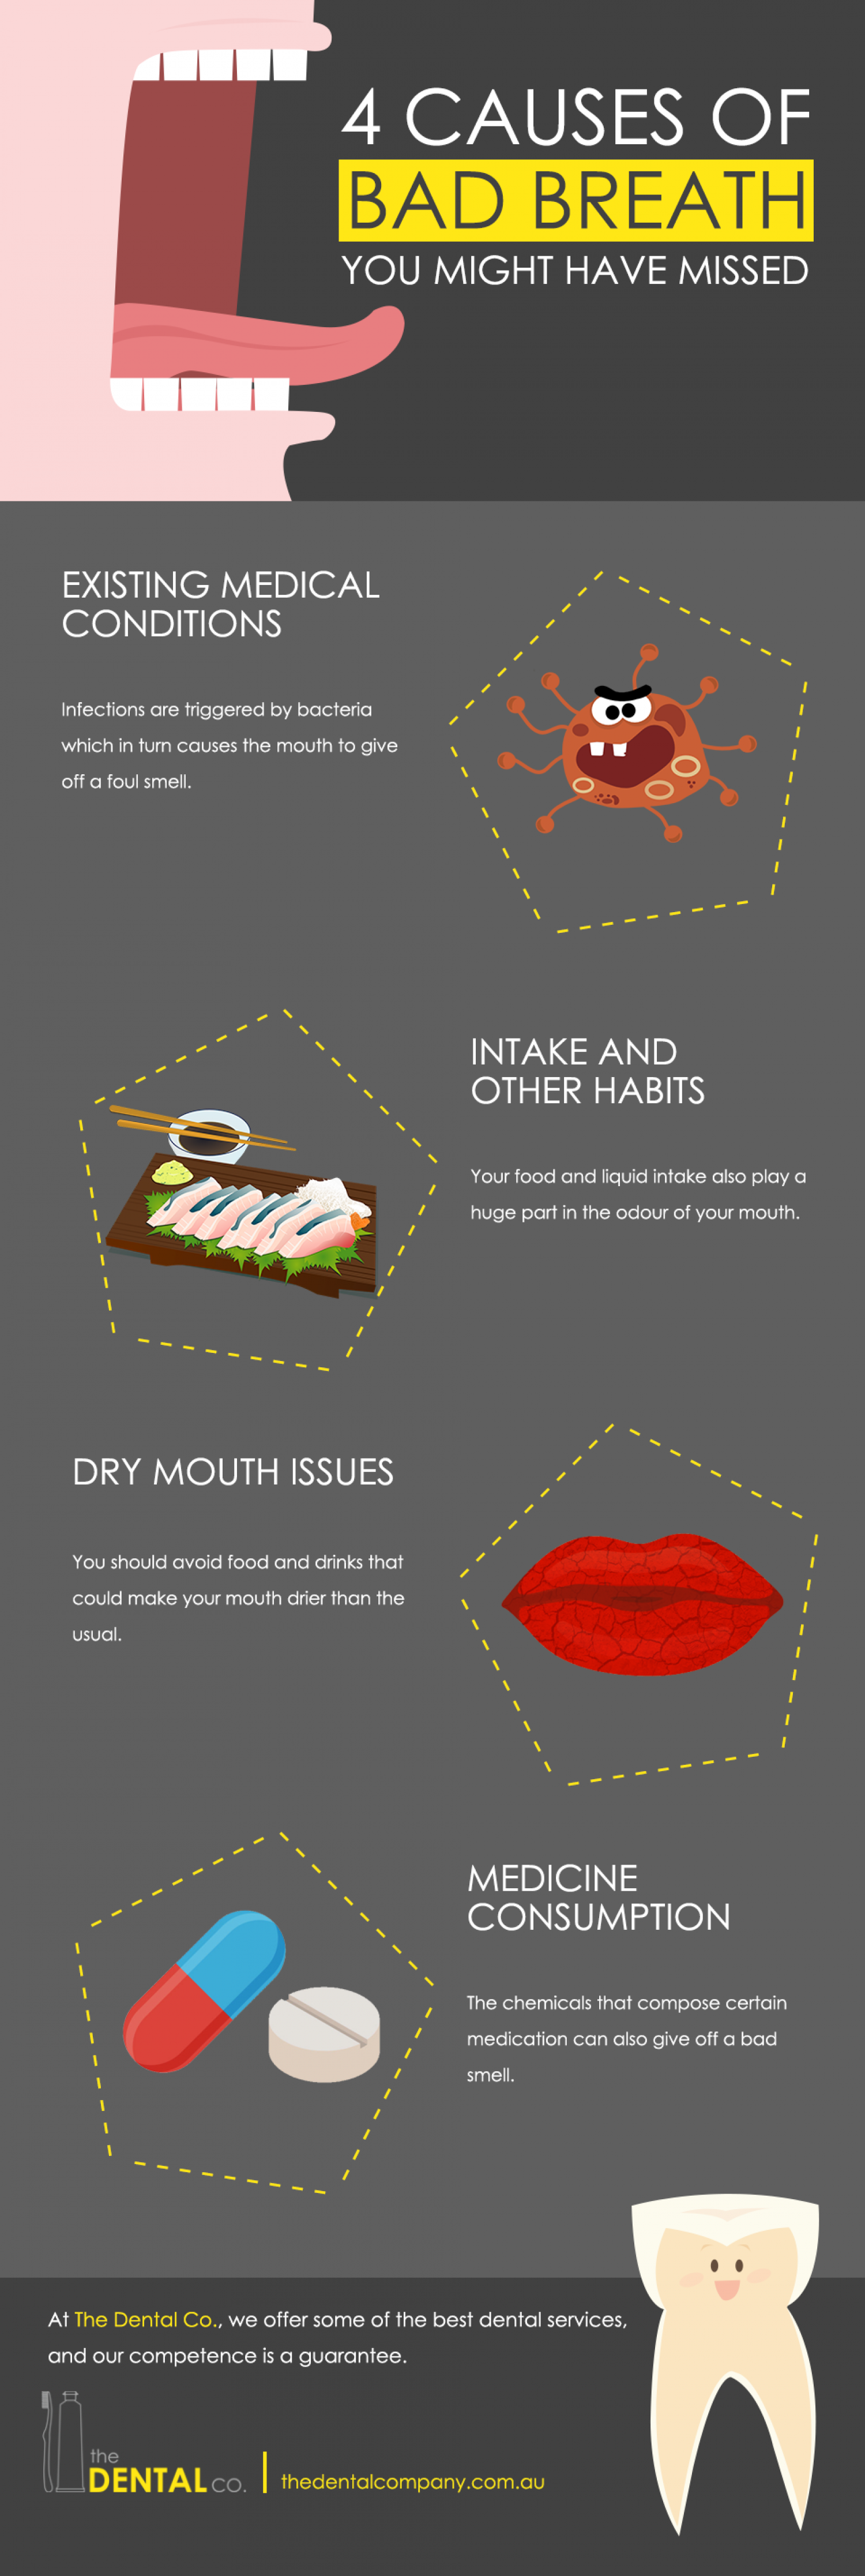 4 Causes of Bad Breath You Might Have Missed Infographic